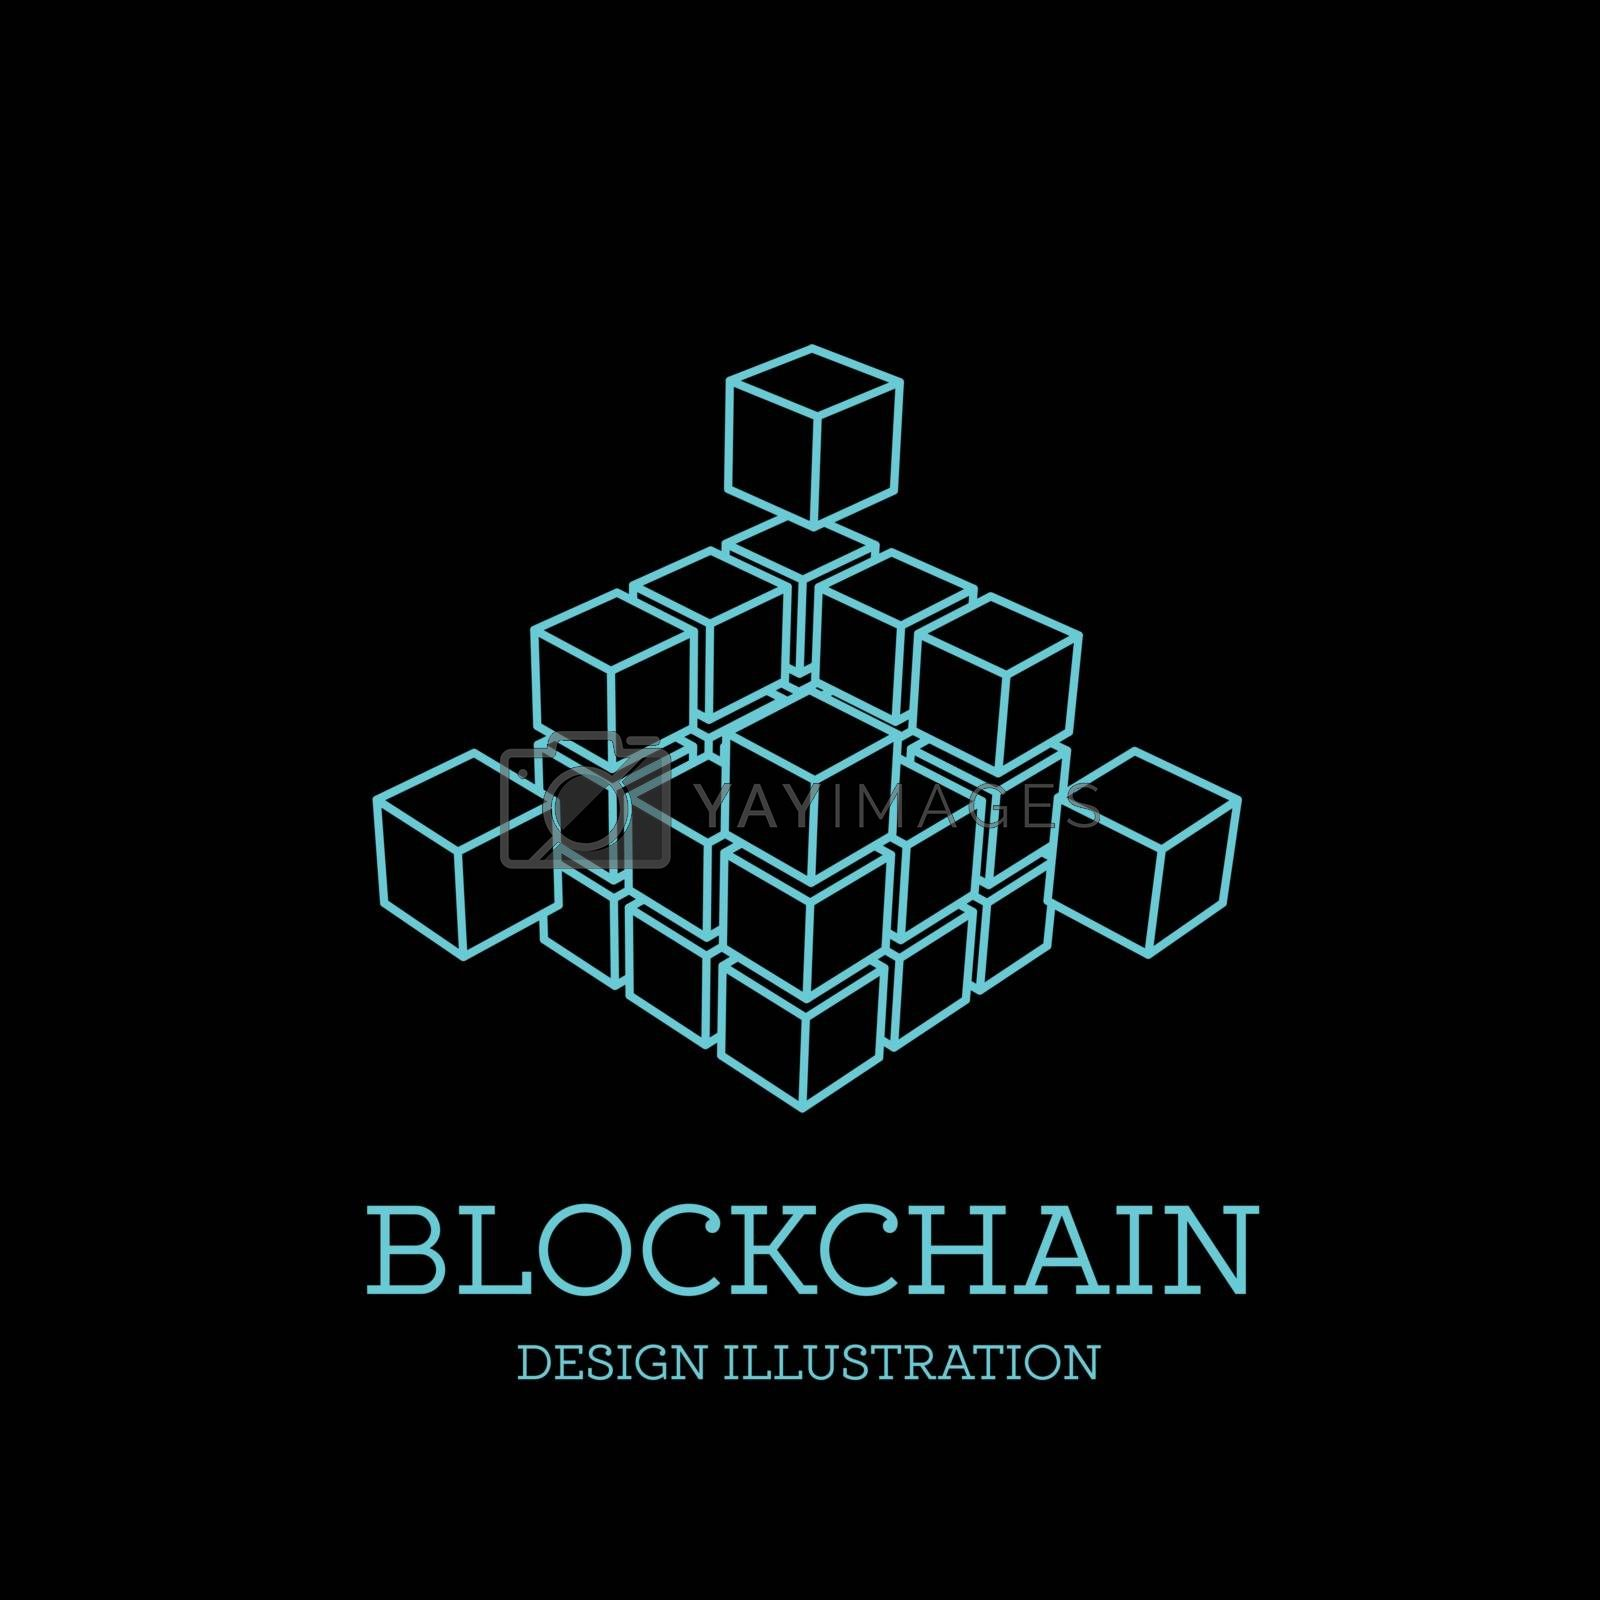 Blockchain vector illustration in the form of cubes. Block chain logo design. The concept of information transfer in space or net